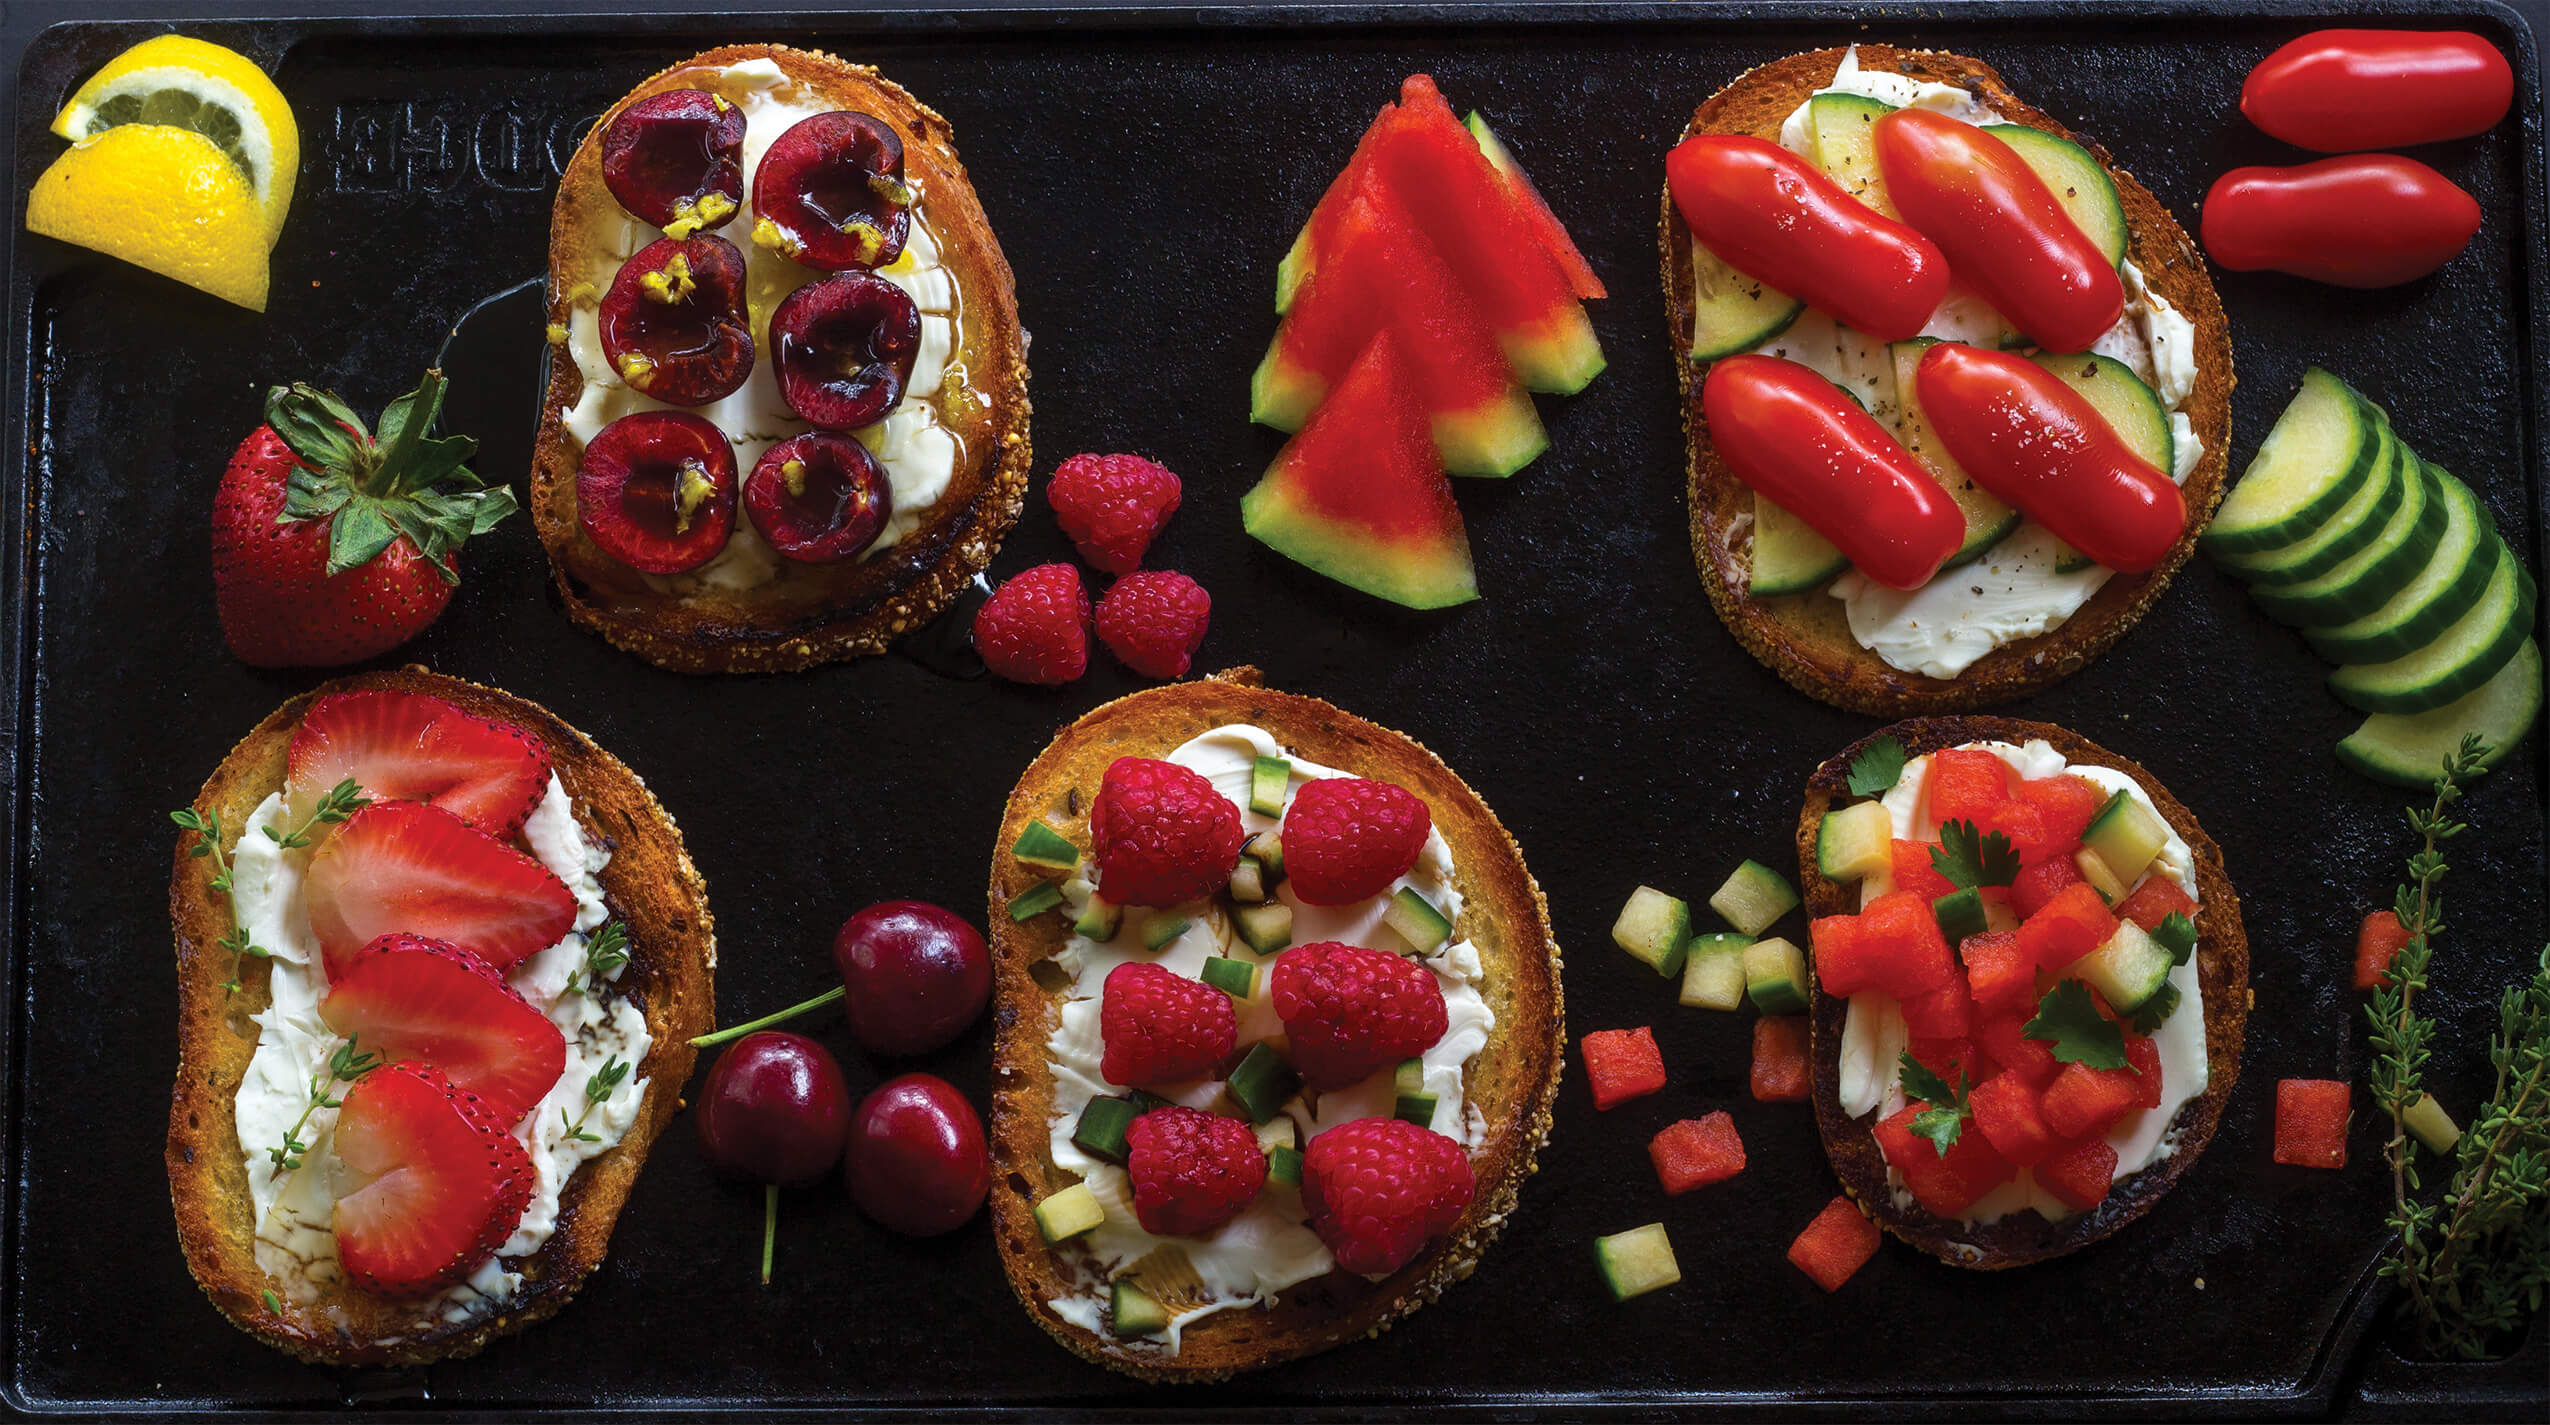 This summer fruit toast recipe is truly as simple as it sounds. I love summer fruits. Everything seems juicer and more flavorful in the summer months. So mix and match all you want. Just have fun with it!